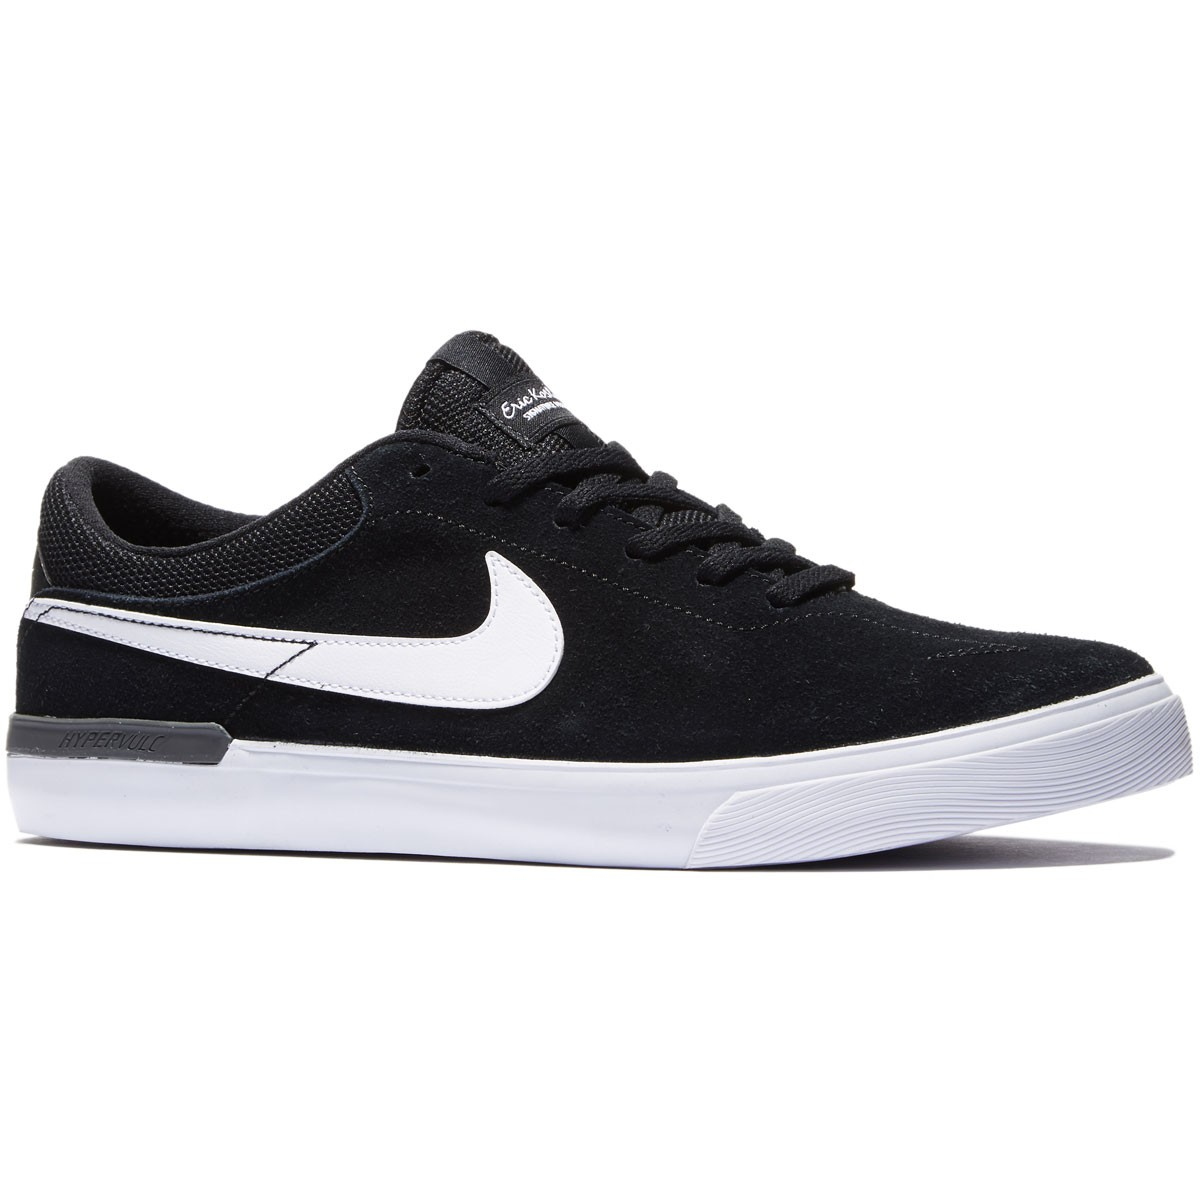 Nike SB Koston Hypervulc Shoes - Black Dark Grey White - 8.0 30cf21f75